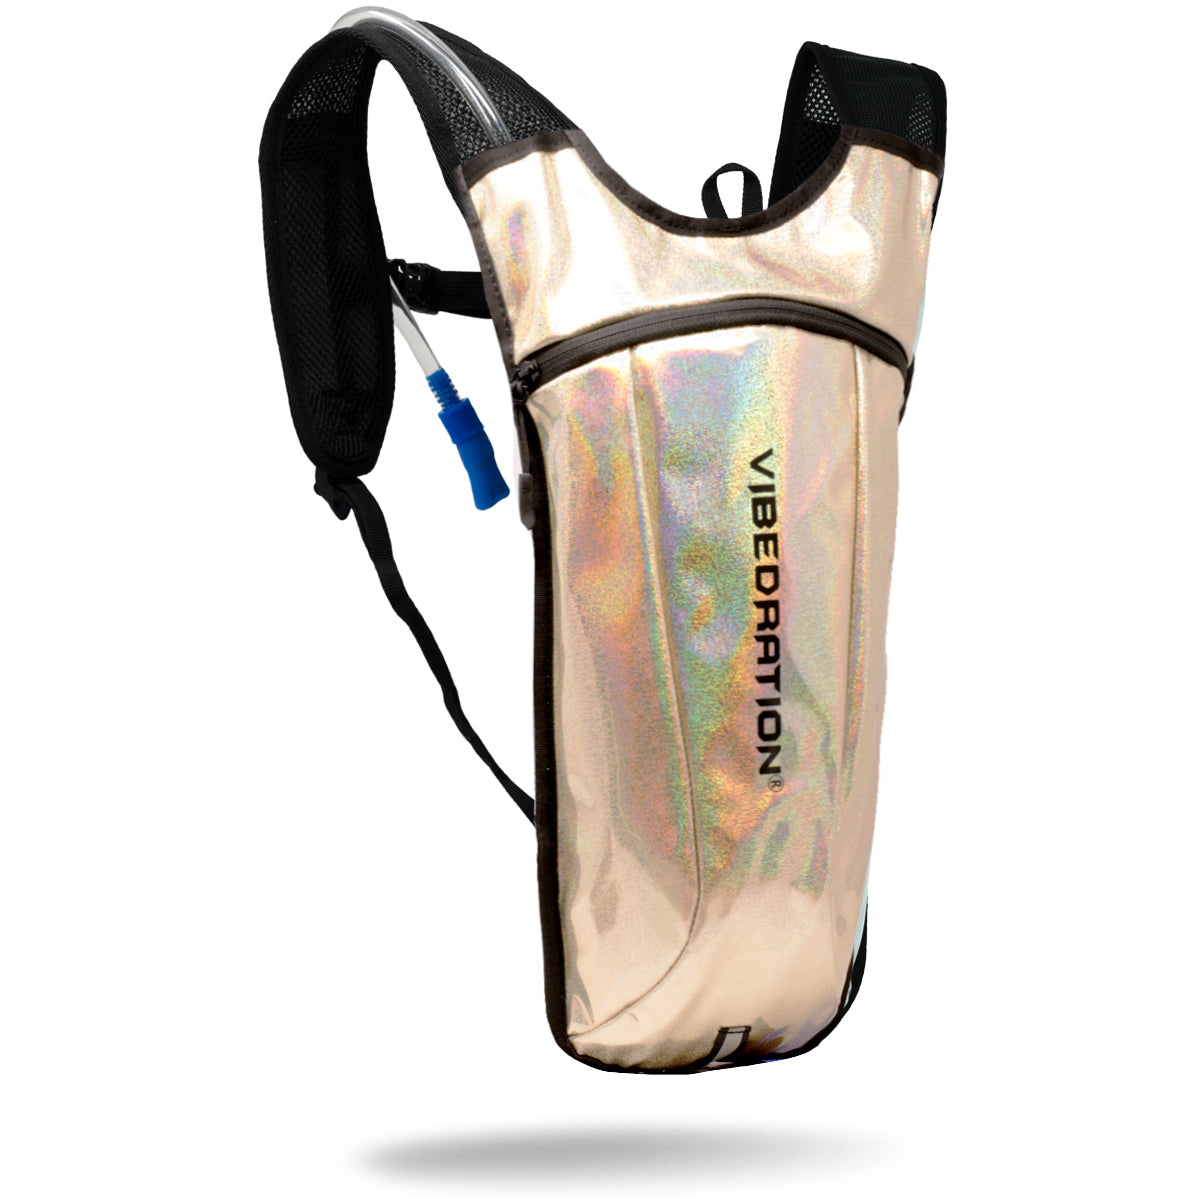 Gold small hydration bag with 2 liter water pack